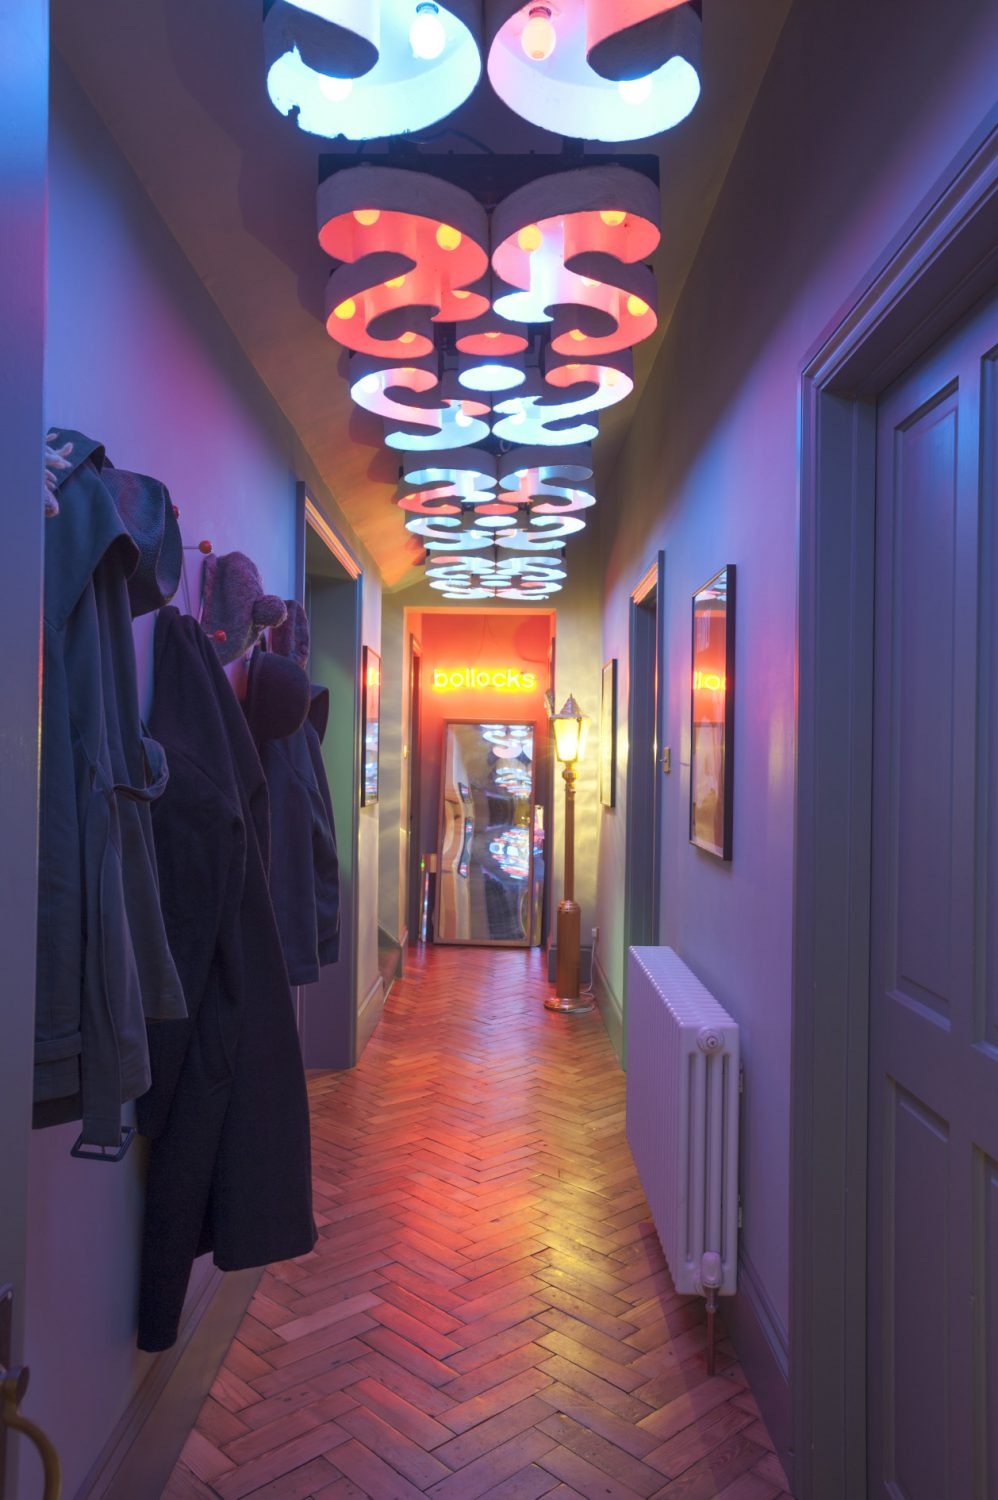 The long hallway, which greets visitors who enter the living accommodation, is lit by a ceiling covered with pieces from Blackpool and fitted with blue and red golf ball LEDs